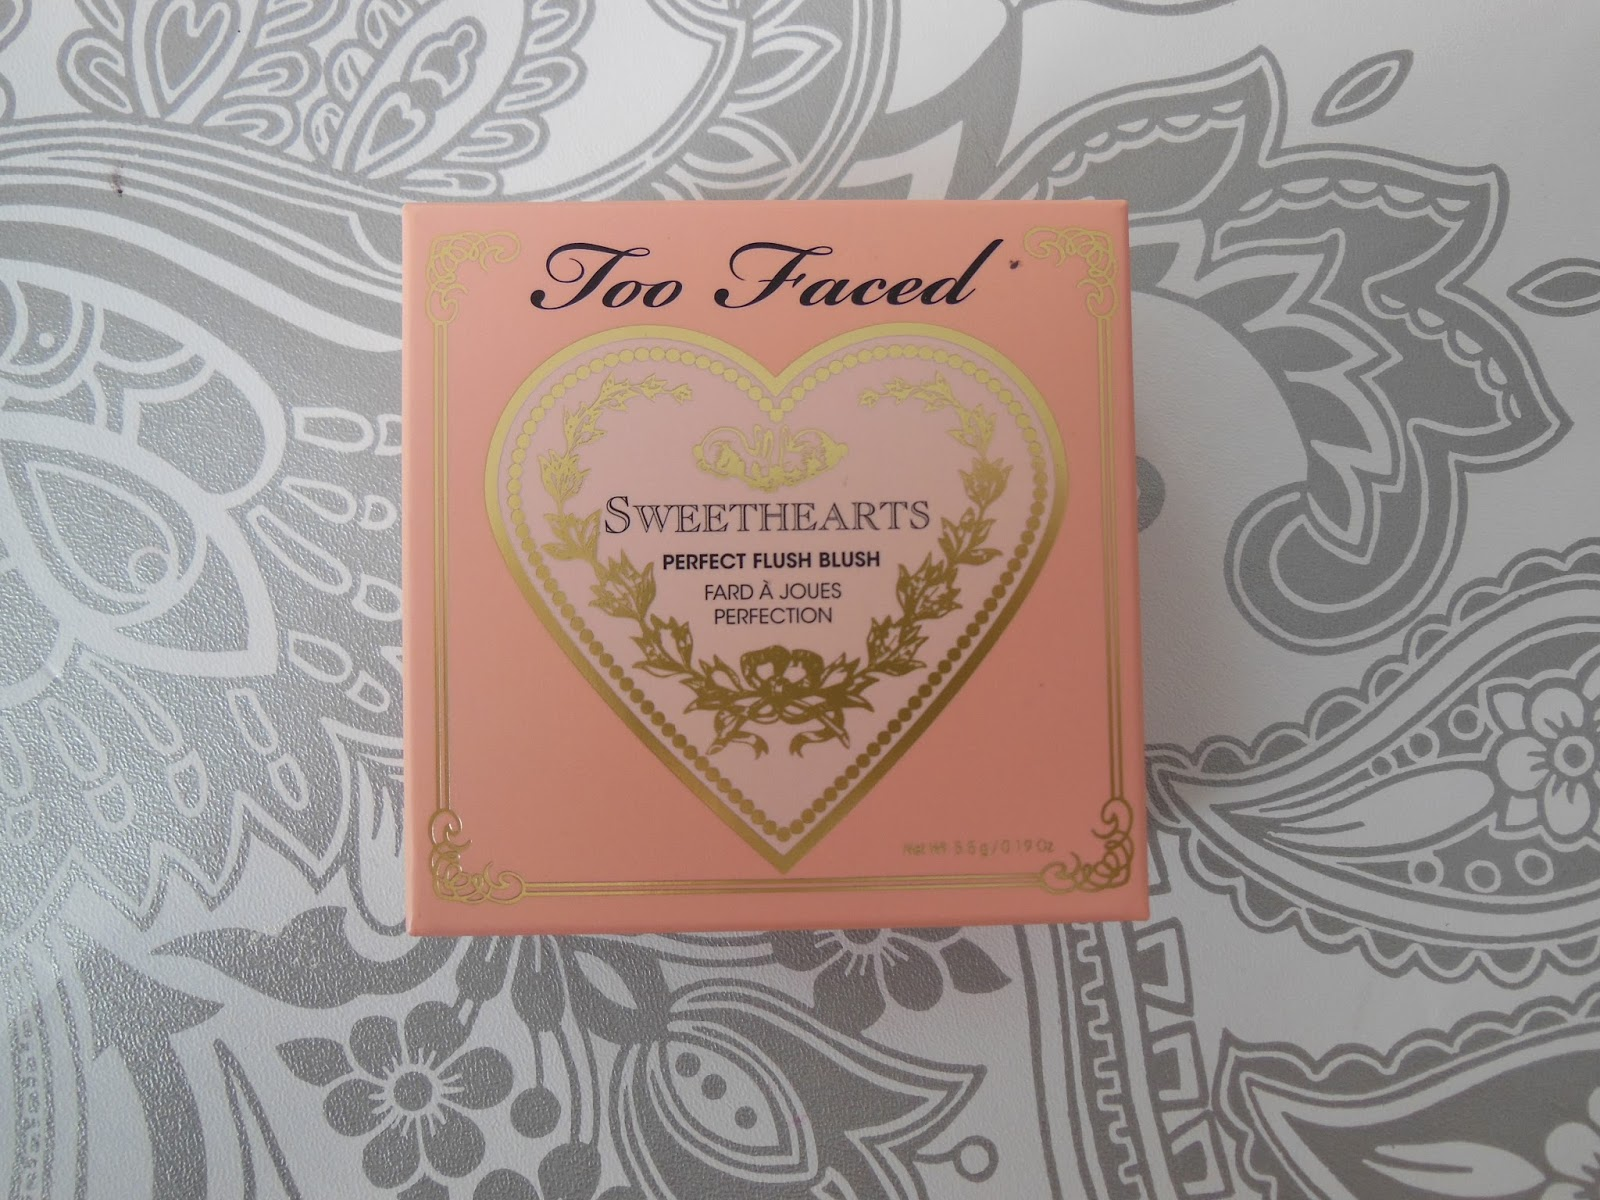 Too Faced Peach Beach Sweetheart blusher